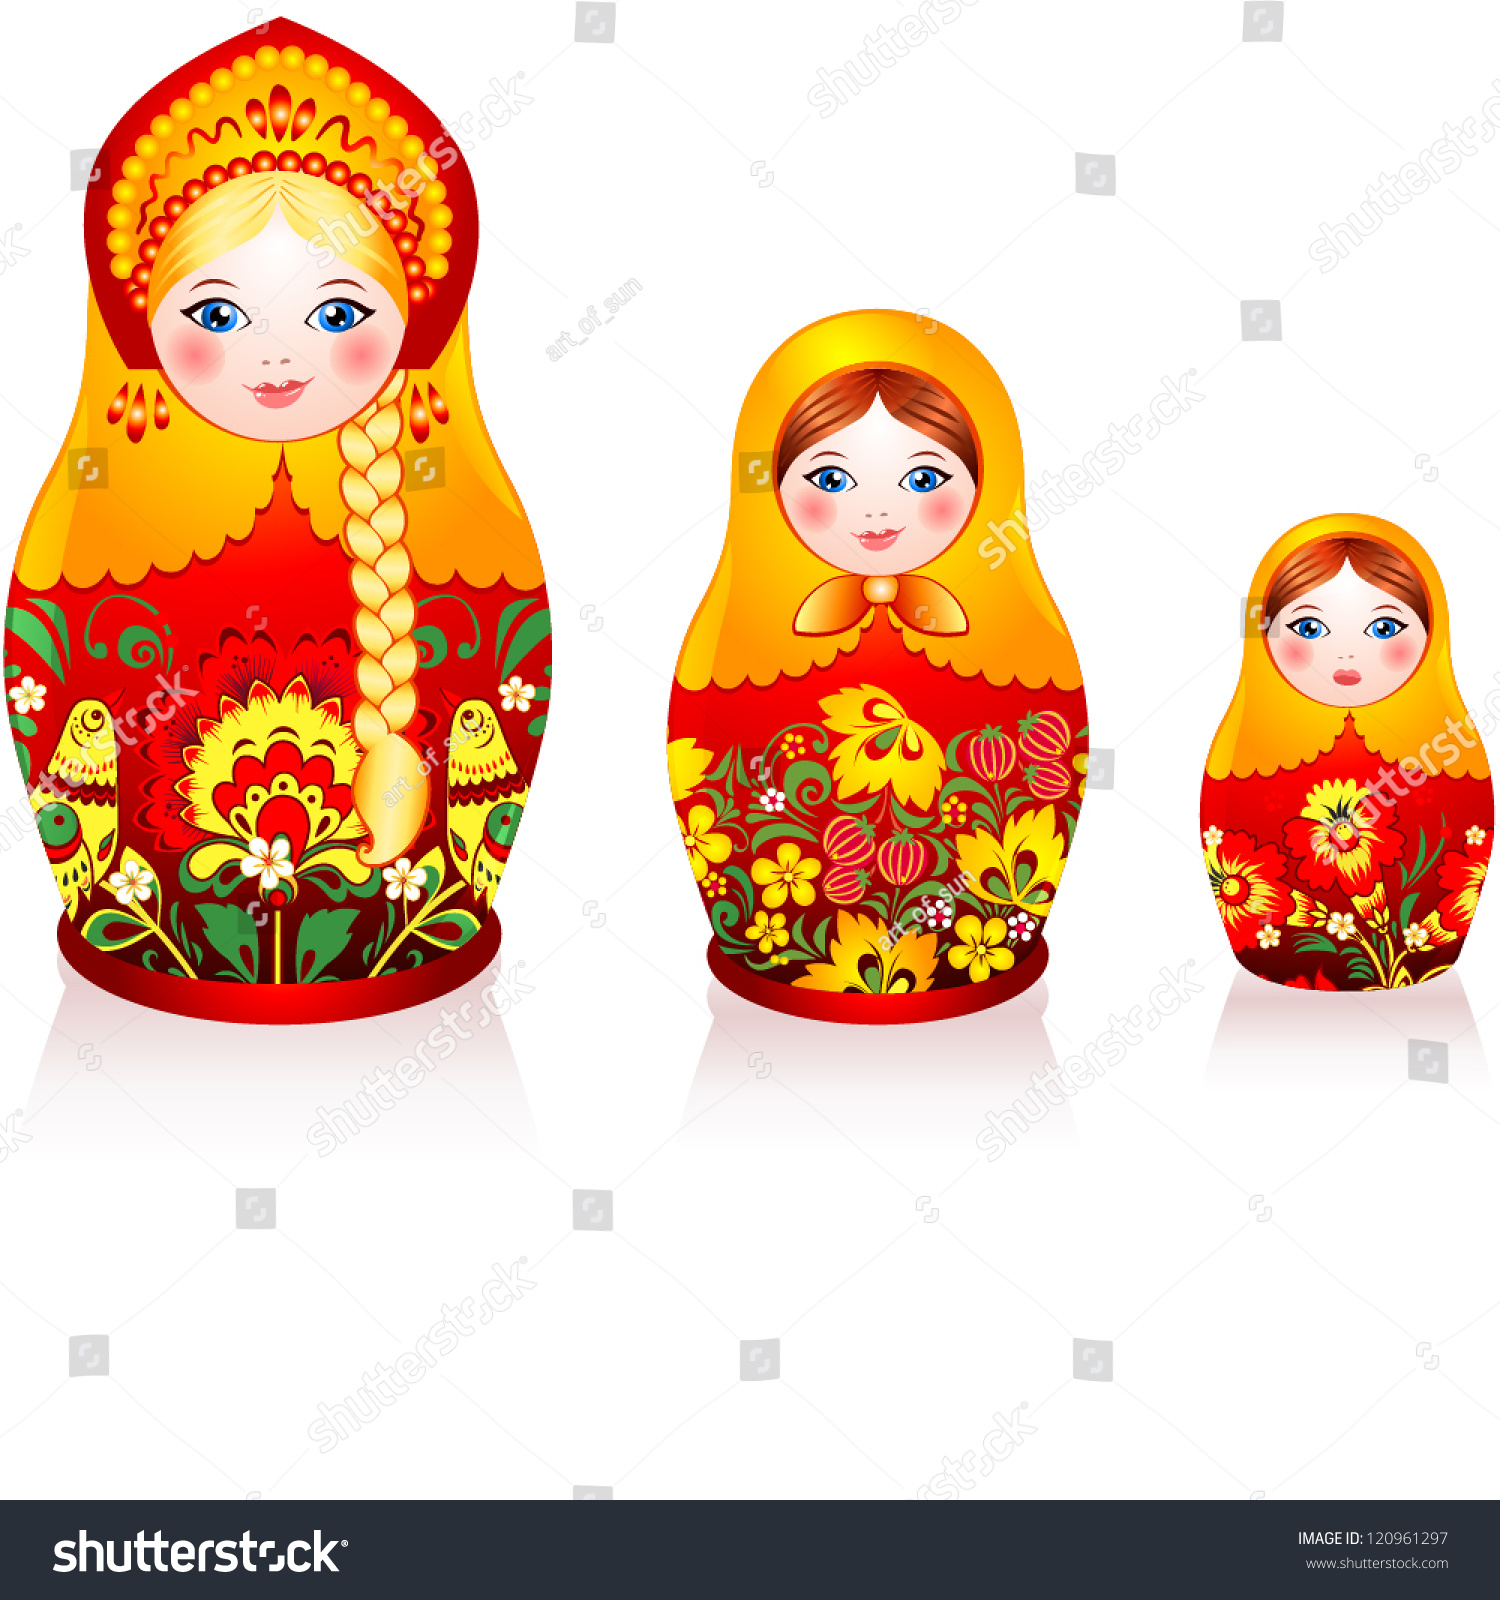 russian tradition matryoshka dolls hohloma style stock vector russian tradition matryoshka dolls in hohloma style a brand of russian traditional or nts used for